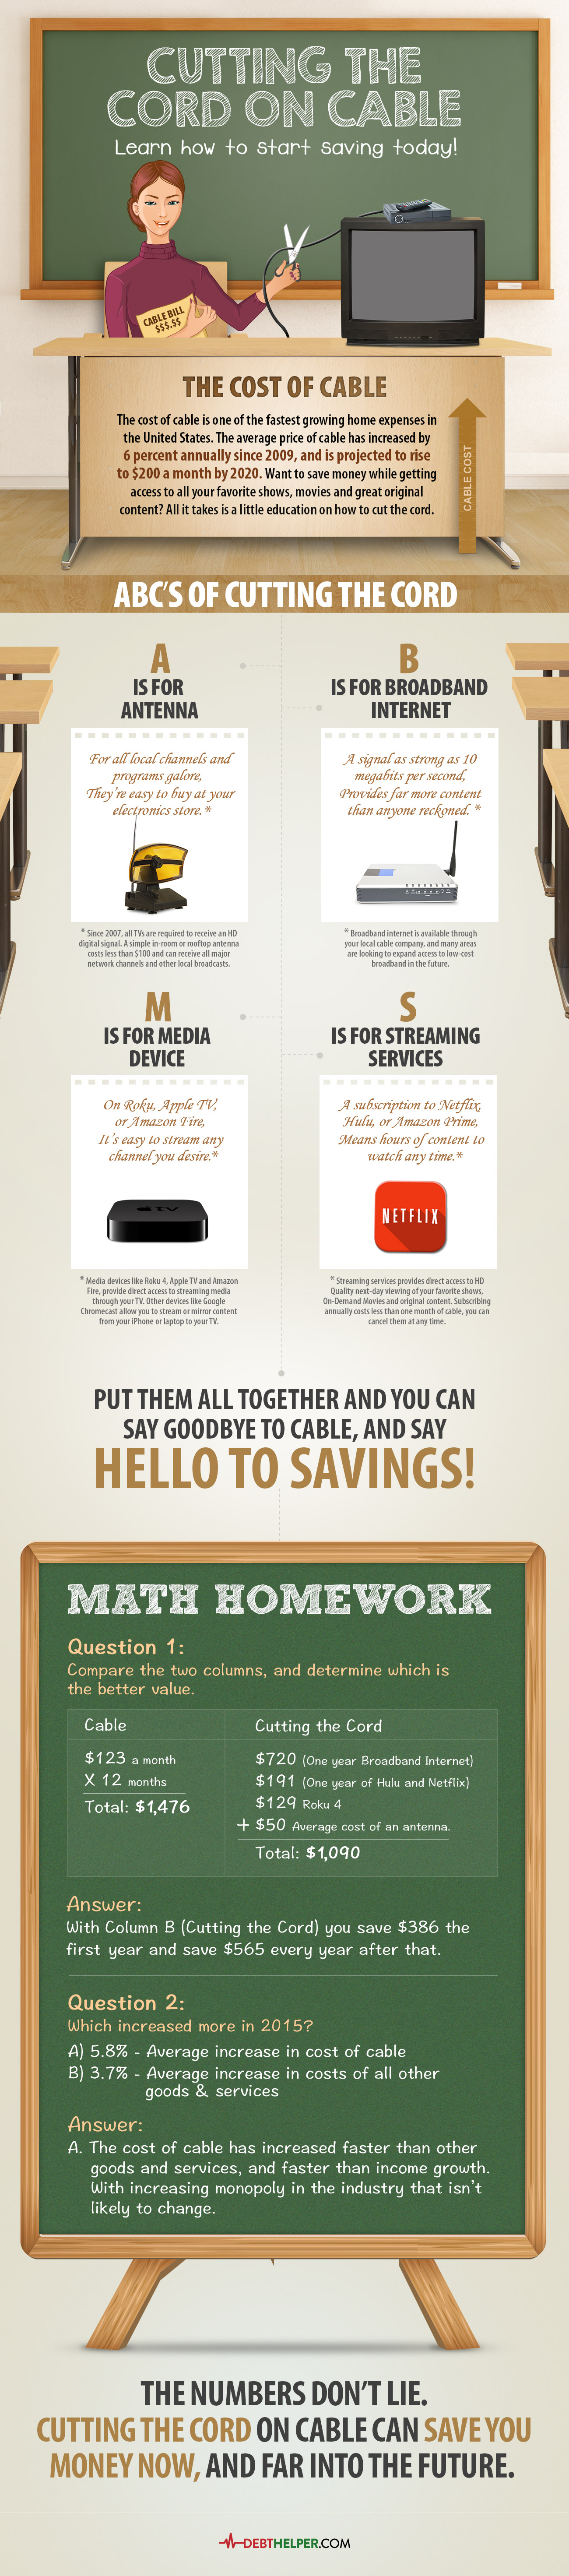 Cutting the Cord on Cable Infographic